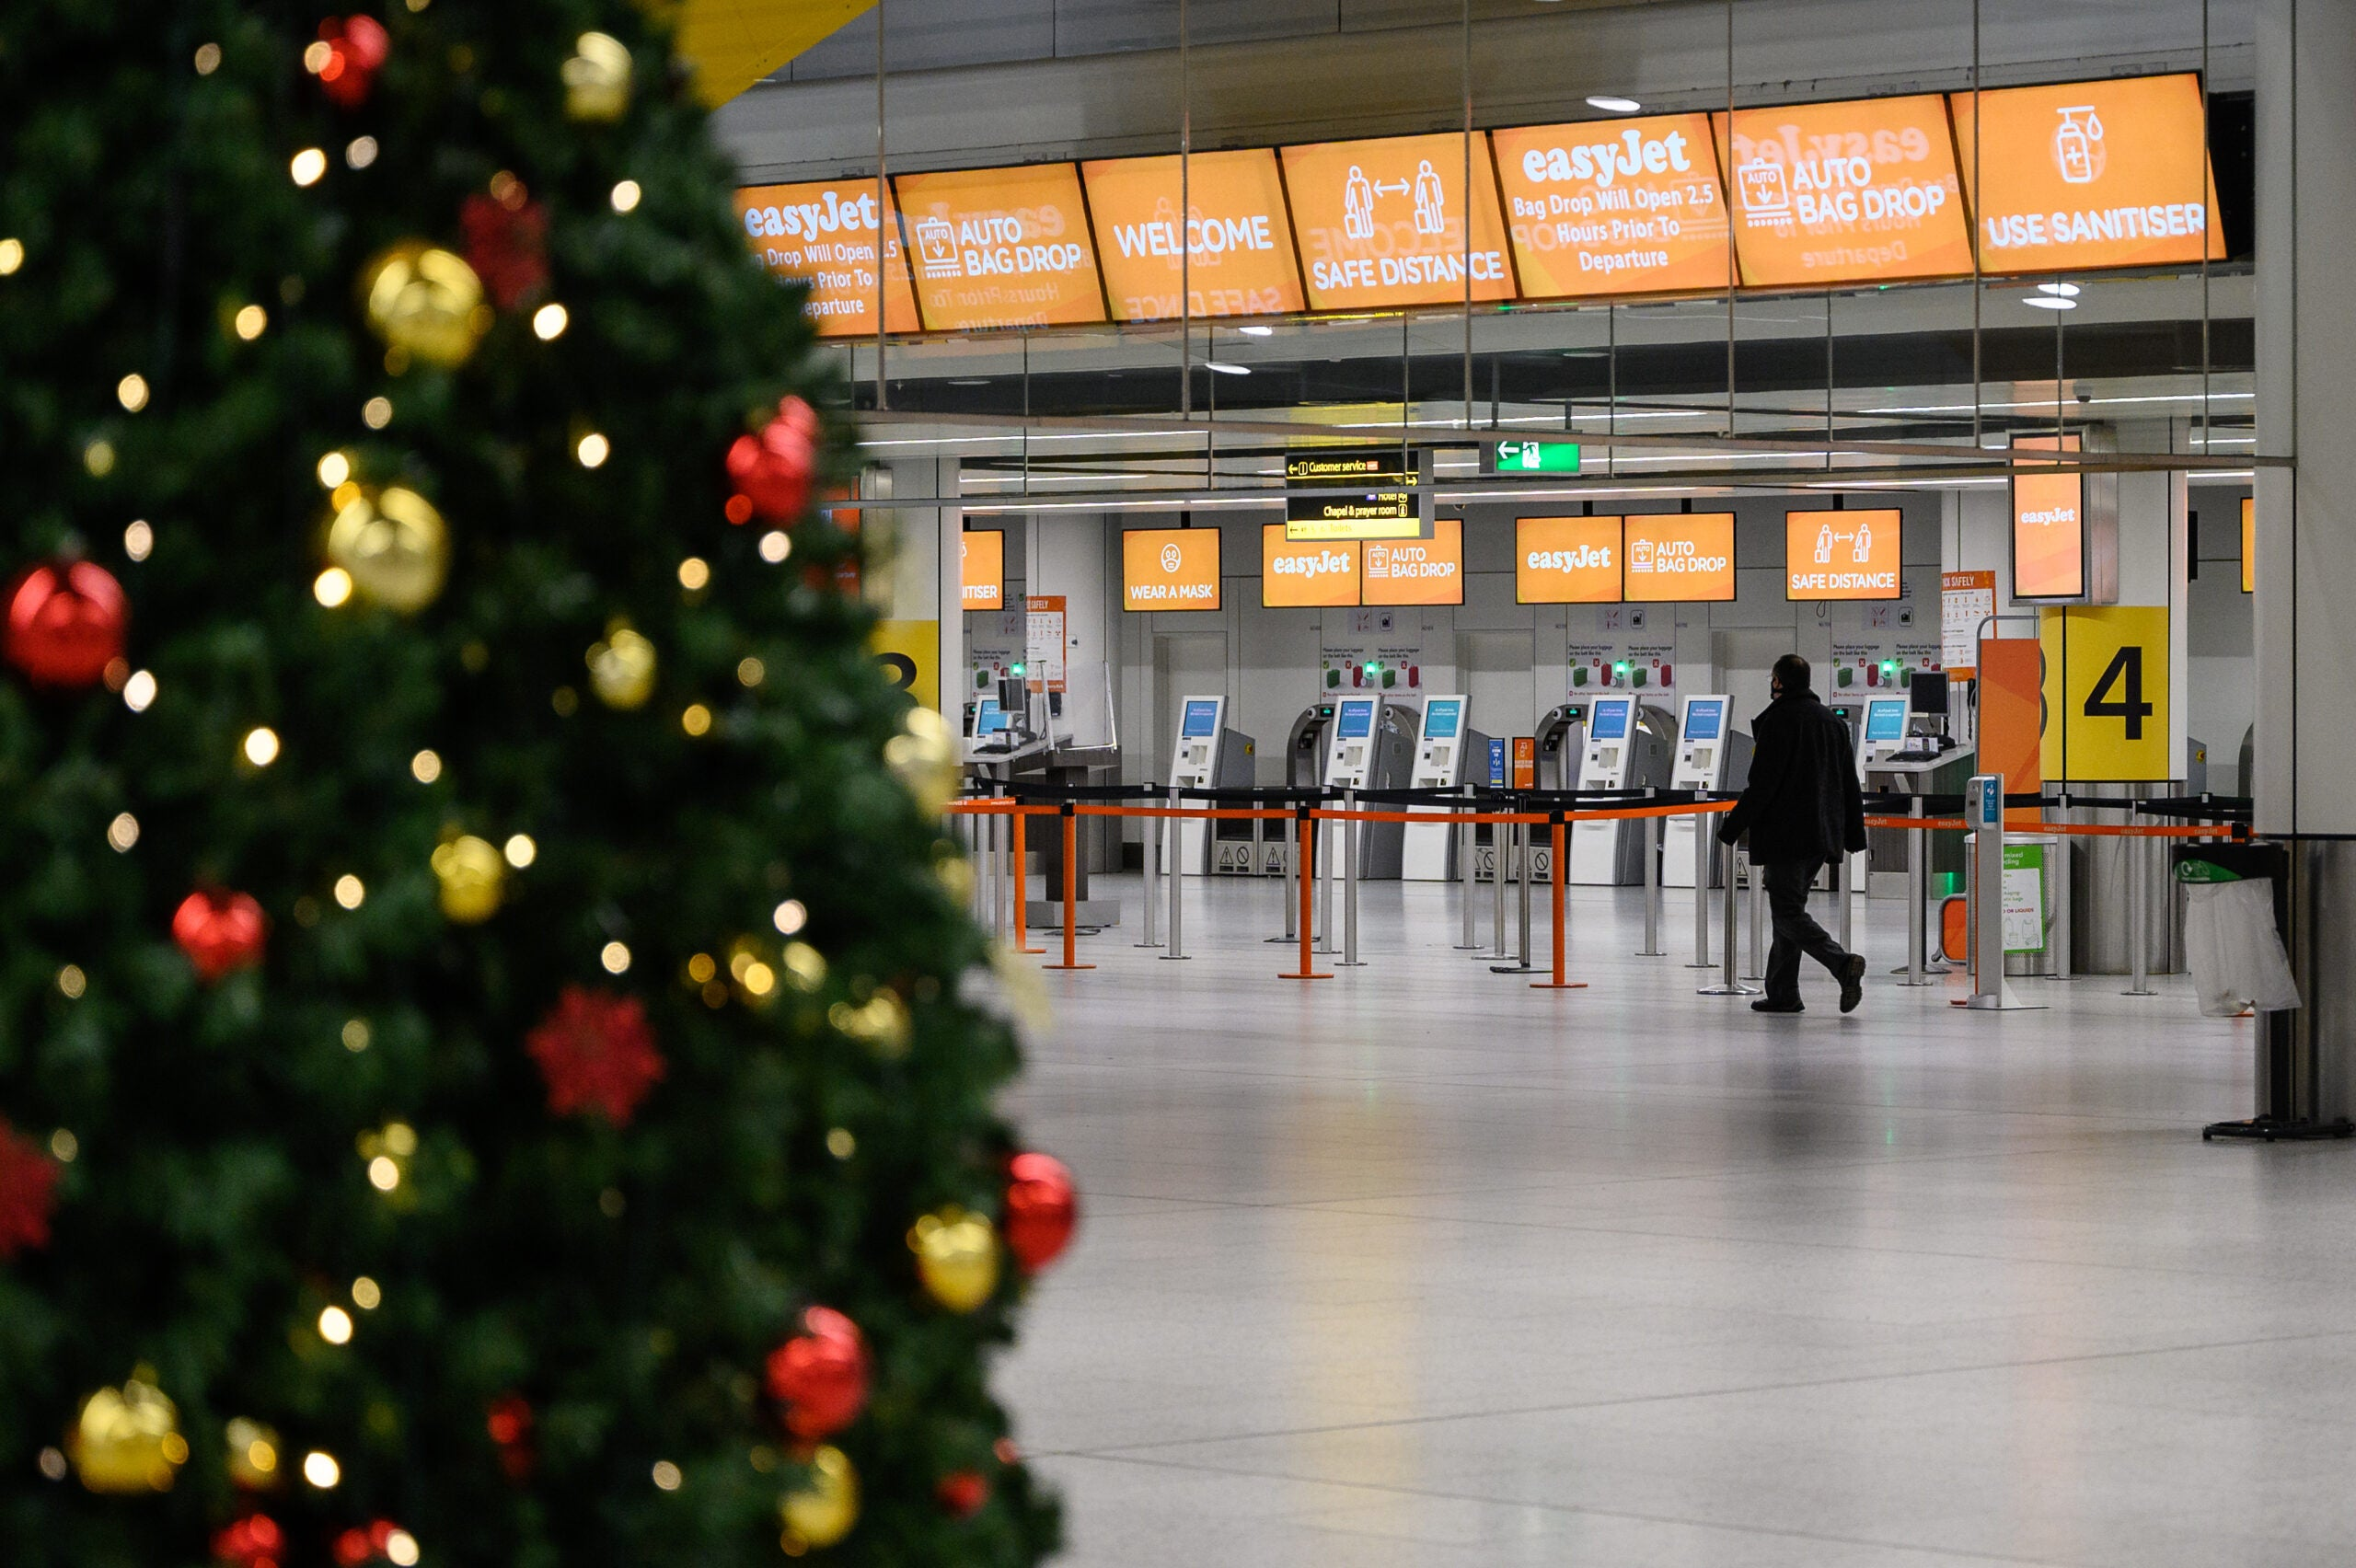 Flying over the holidays? Here's everything you need to know before taking off